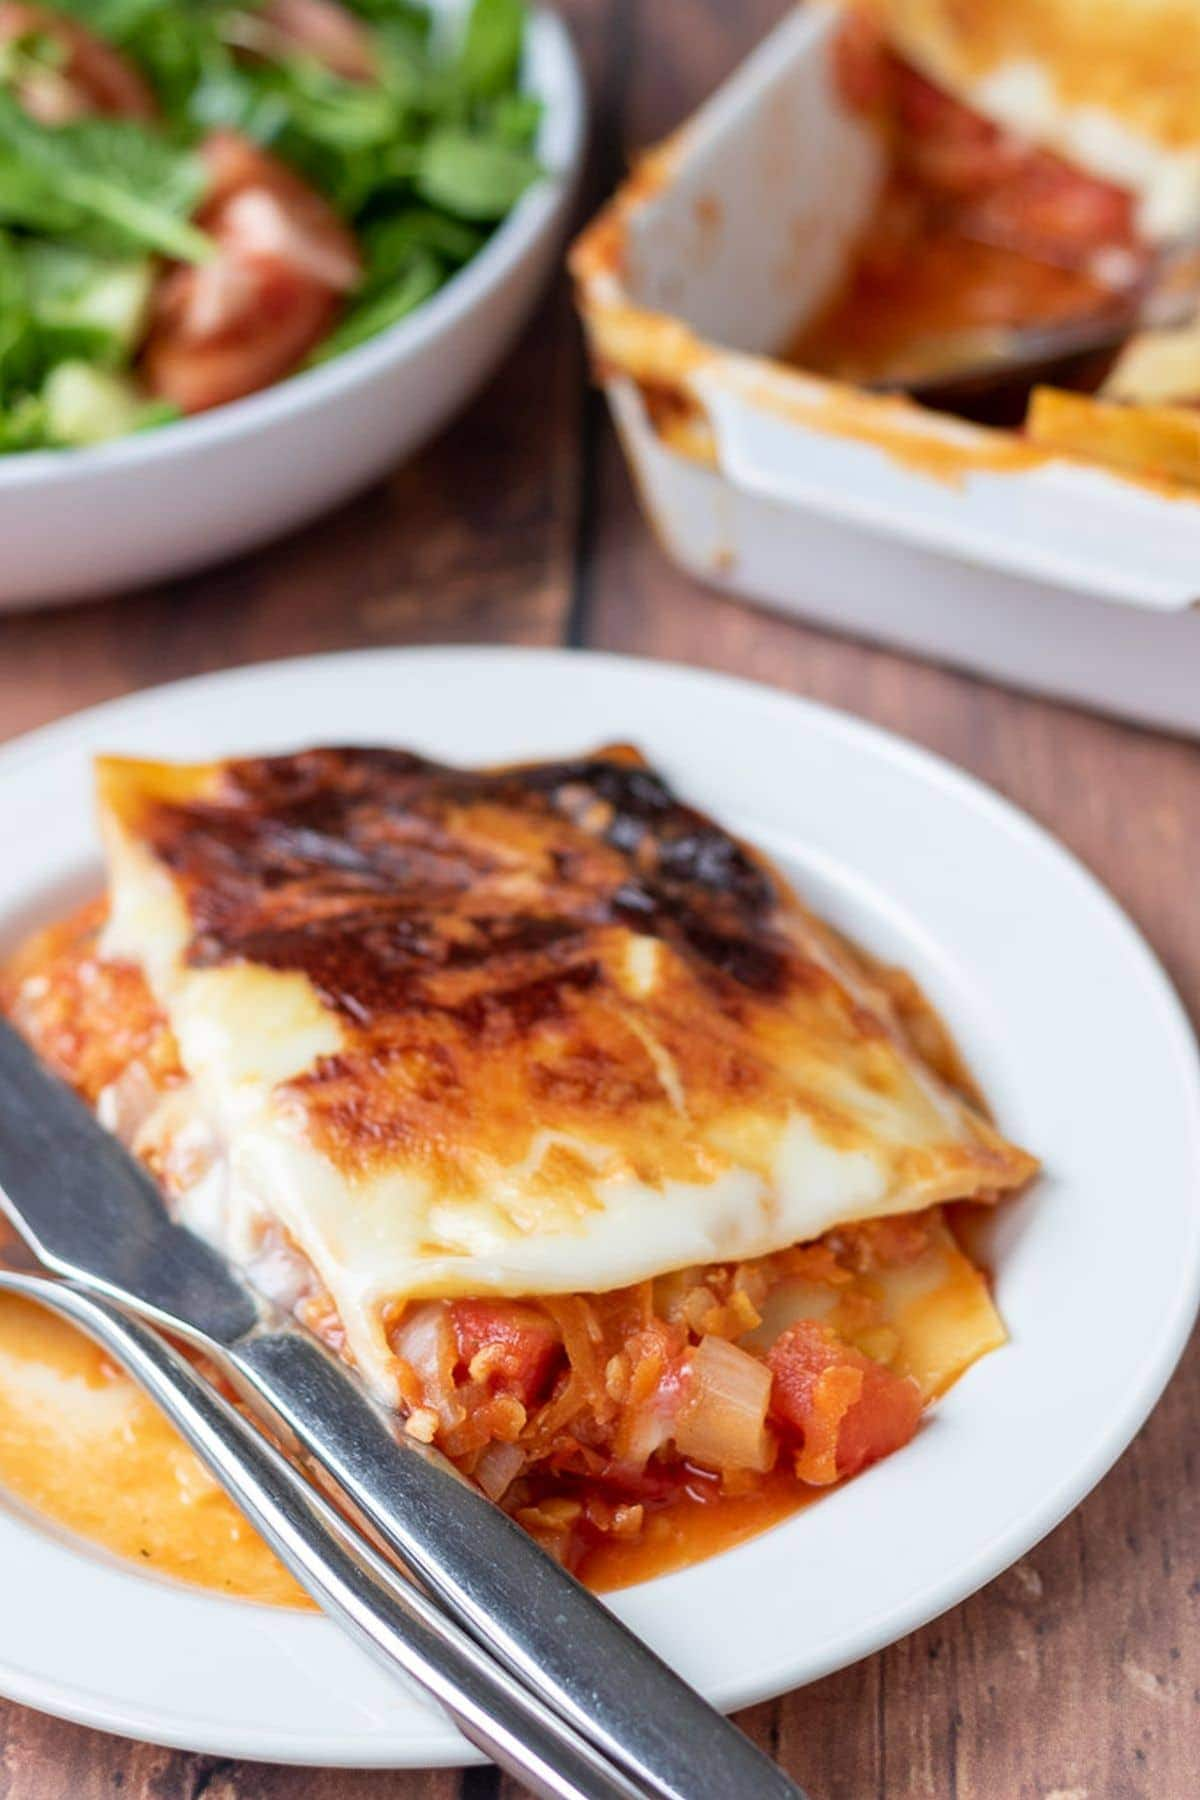 A portion of lentil lasagne placed on a plate with a knife and fork. Side salad and casserole dish in the background.